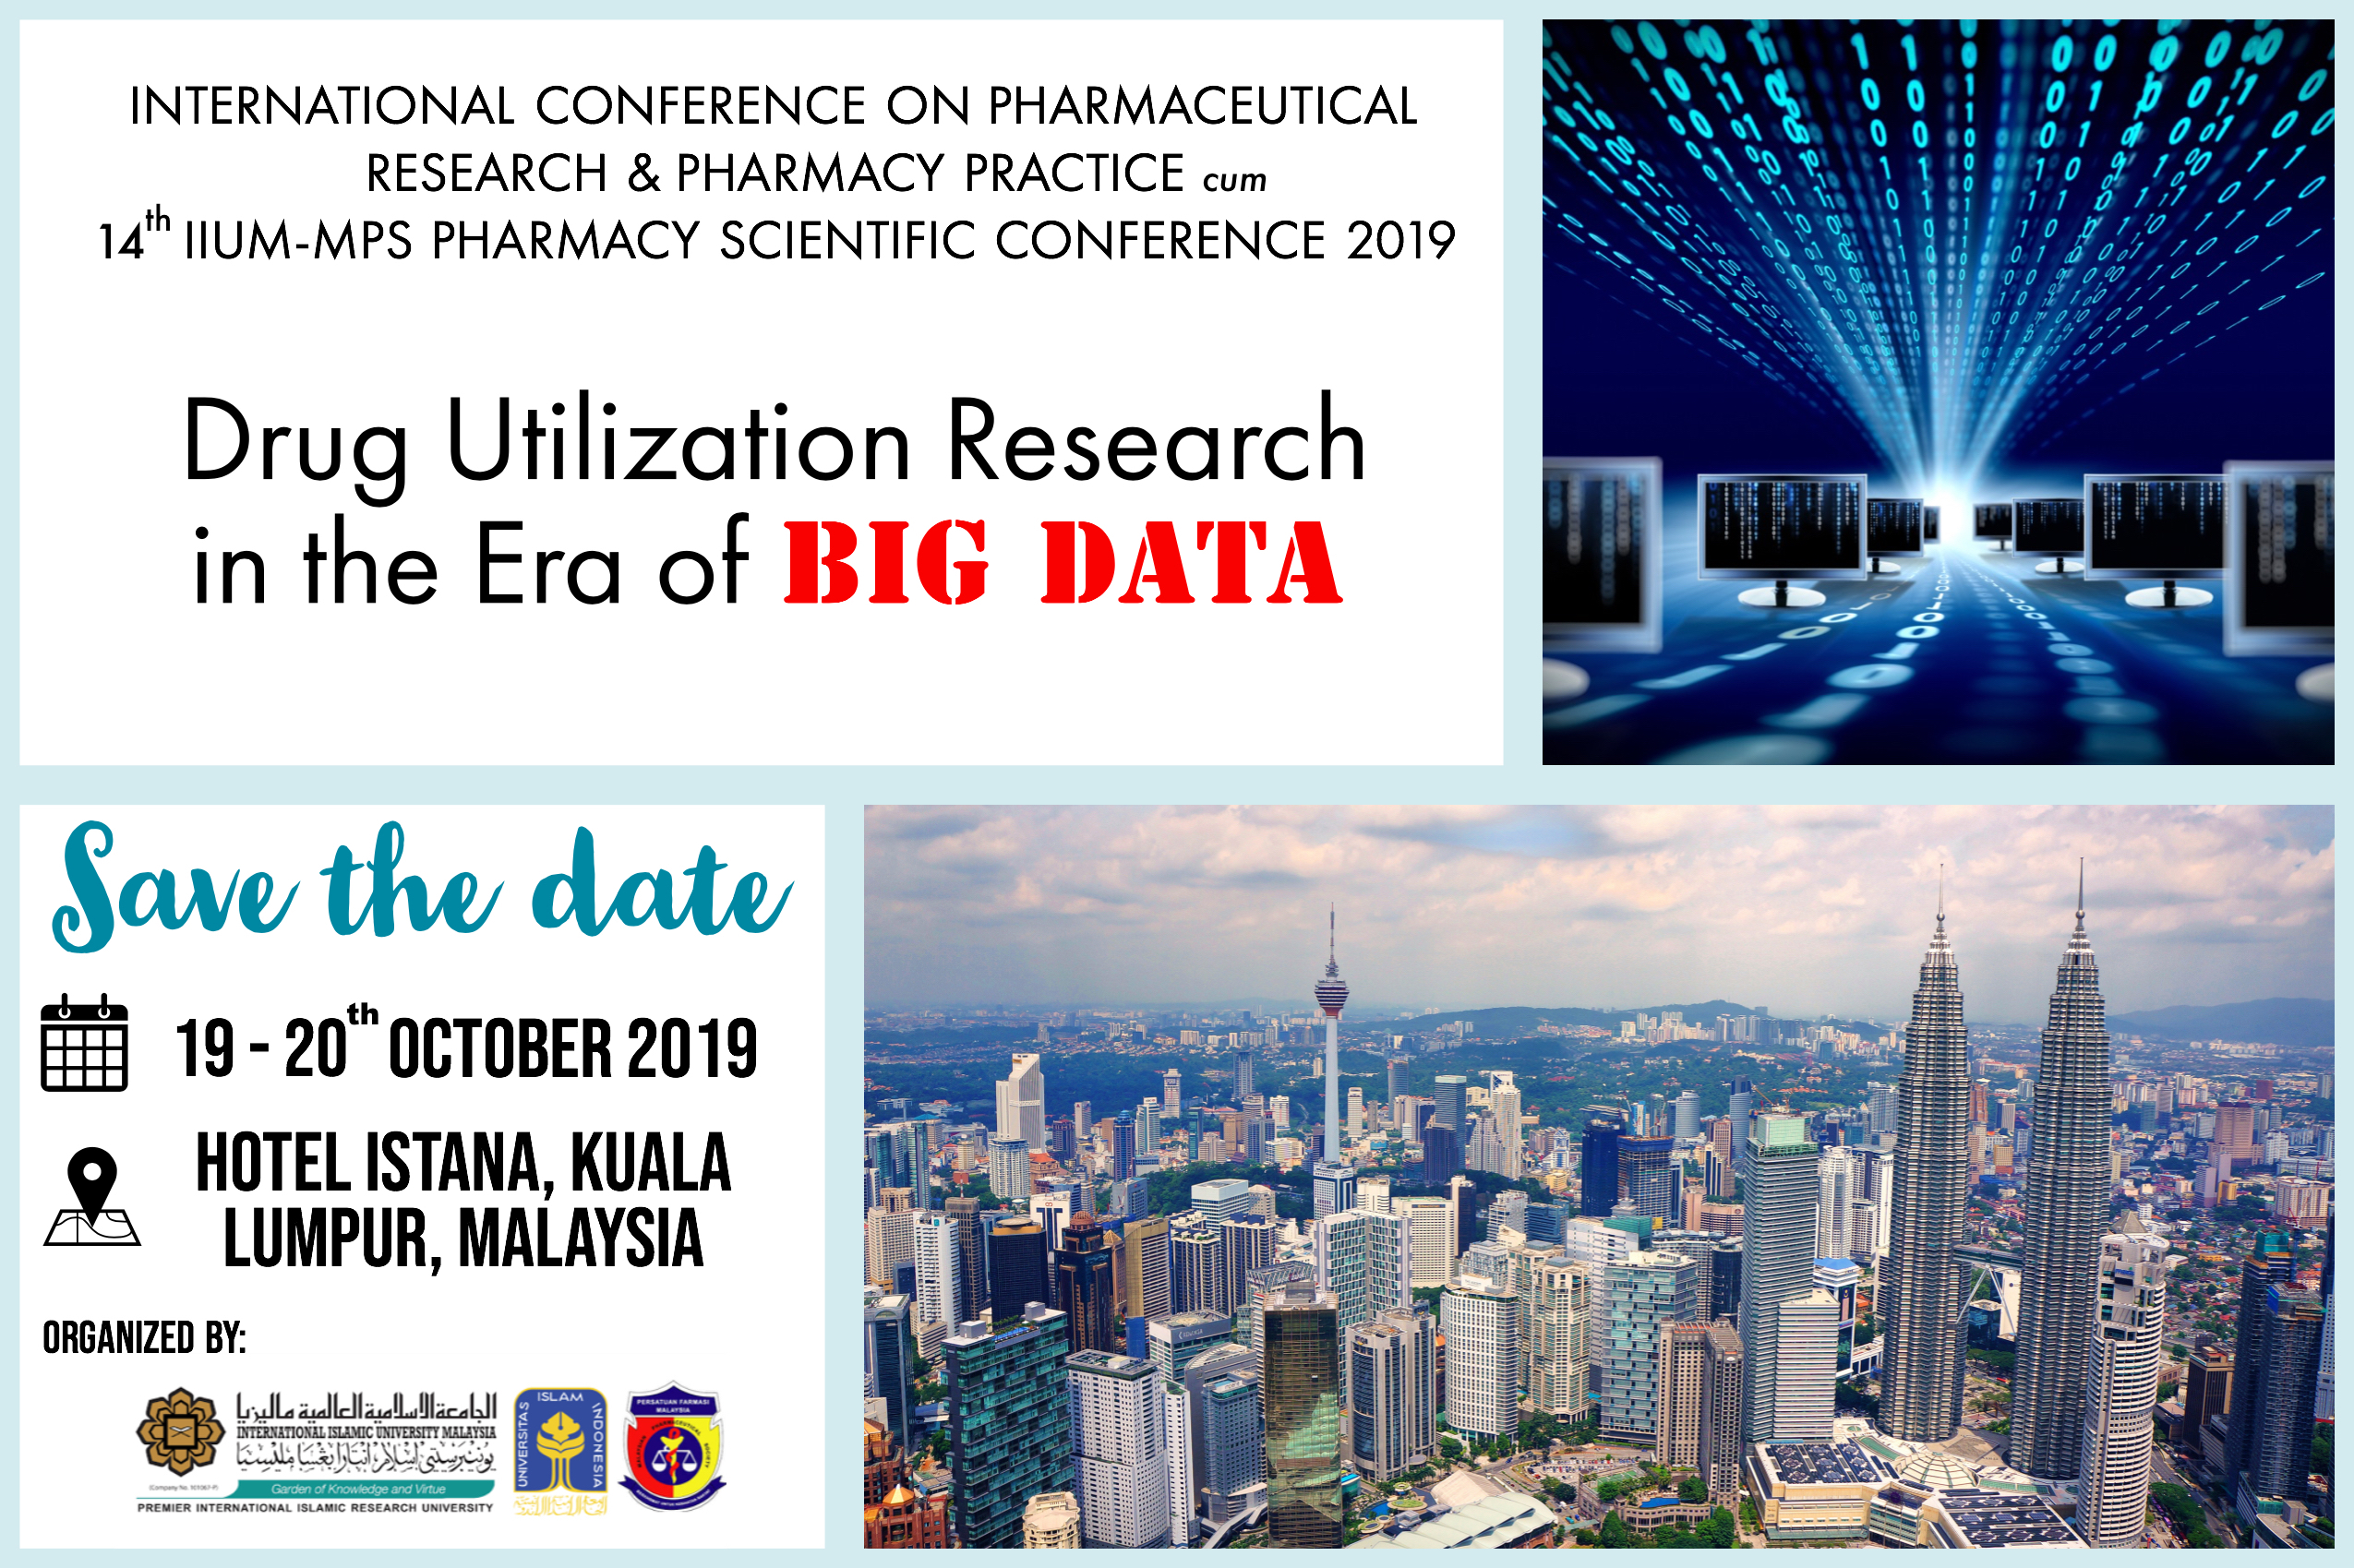 The International Conference on Pharmaceutical Research and Pharmacy Practice (ICPRP2019)